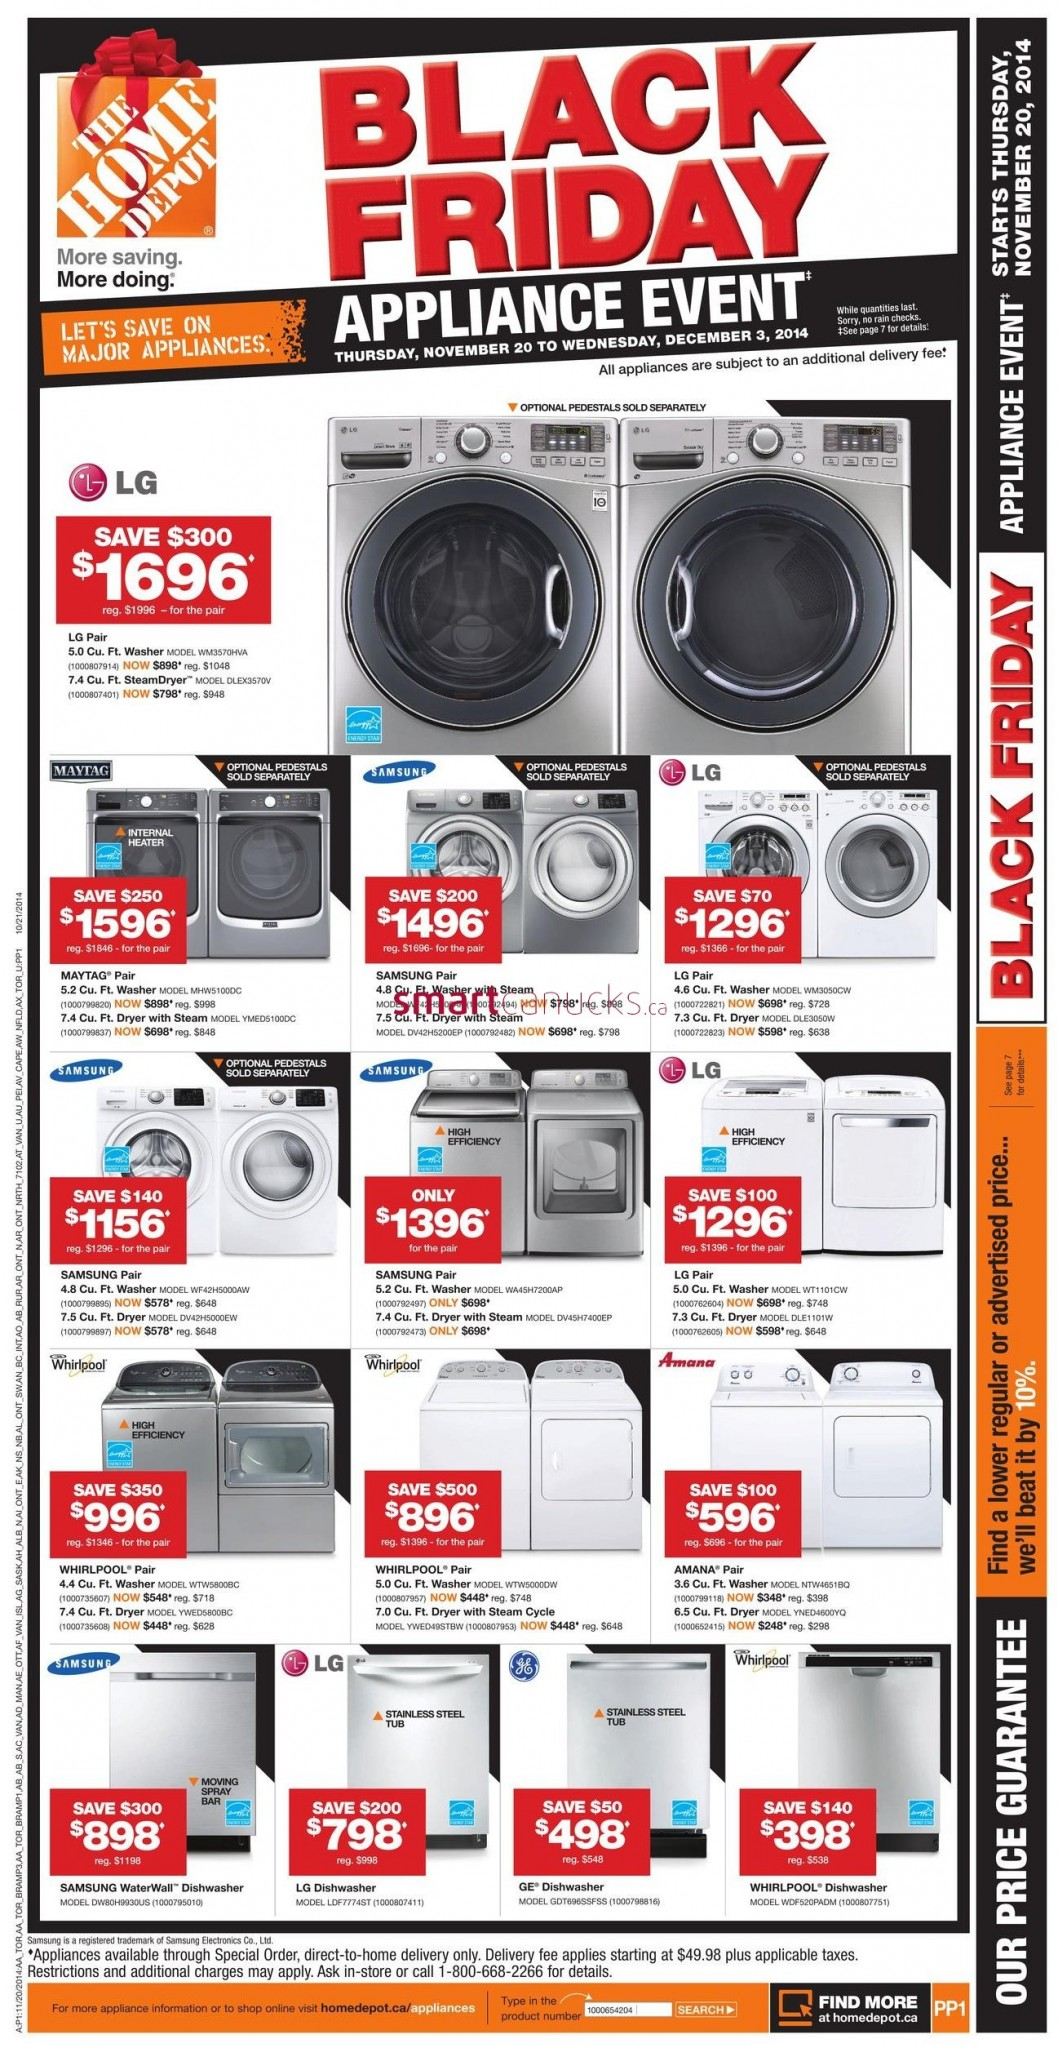 Home Depot Appliances Black Friday Sale Live Now. Like every year, HomeDepot is offering Black Friday Savings on Appliances Now. With up to 40% off & up to $ extra off, they have lowest prices of the year on appliances. These are the same deals that Home Depot will be offering this Black Friday.